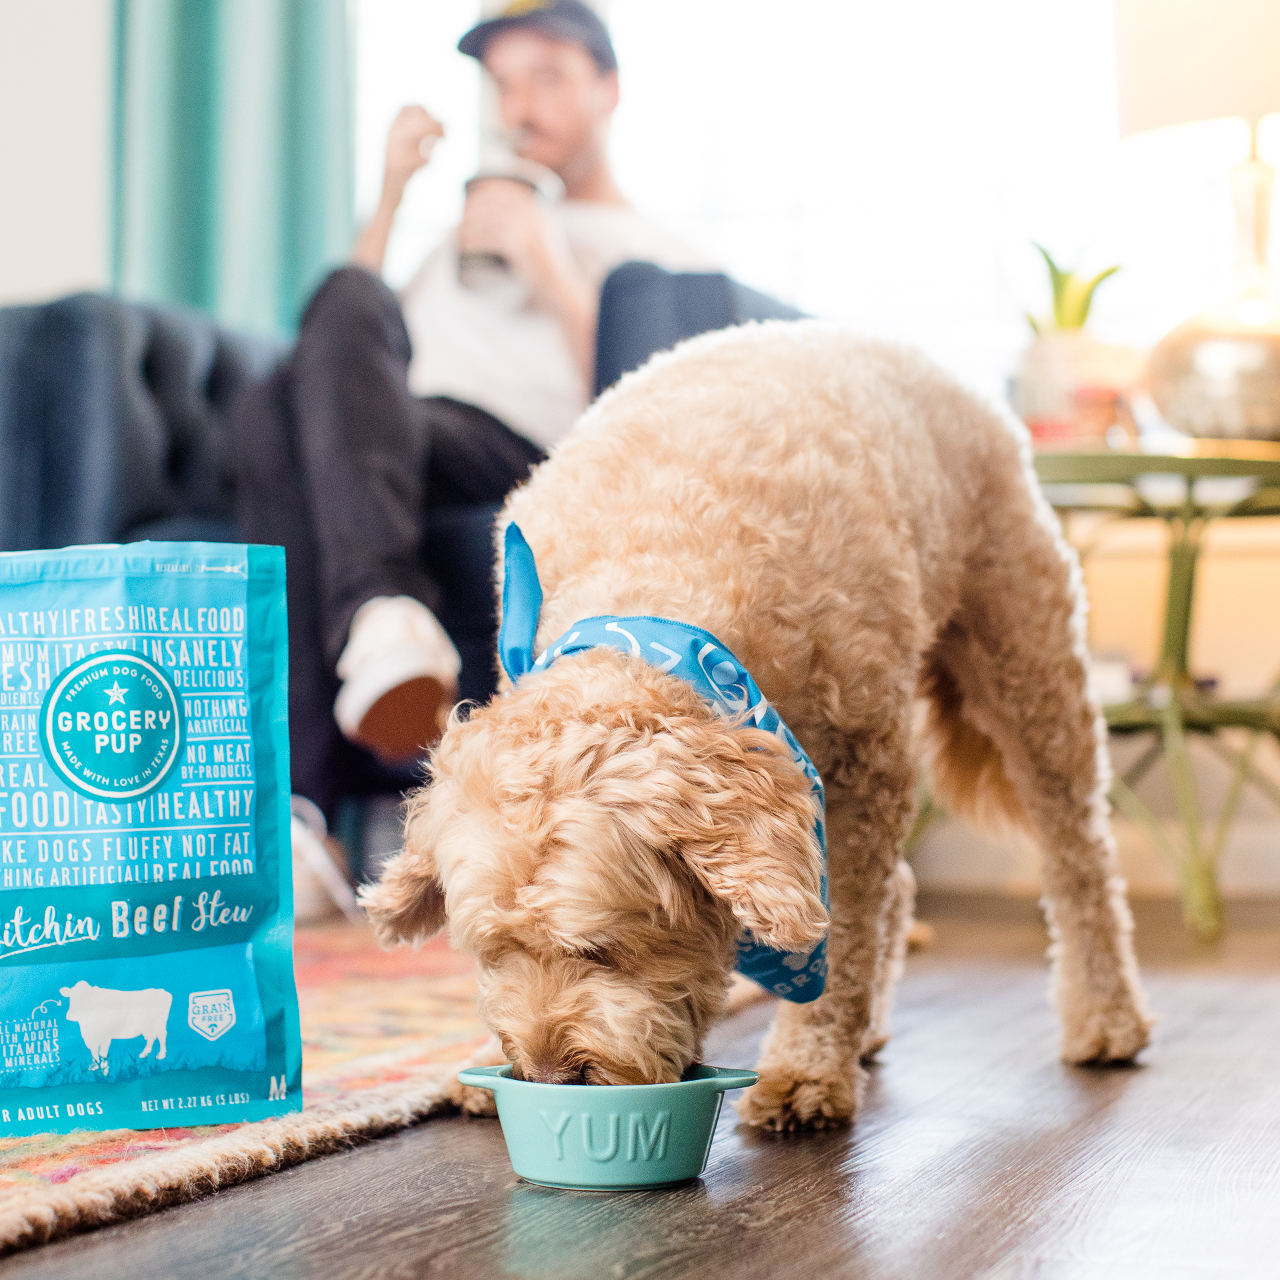 GROCERY PUP - HOME DELIVERY DOG FOOD